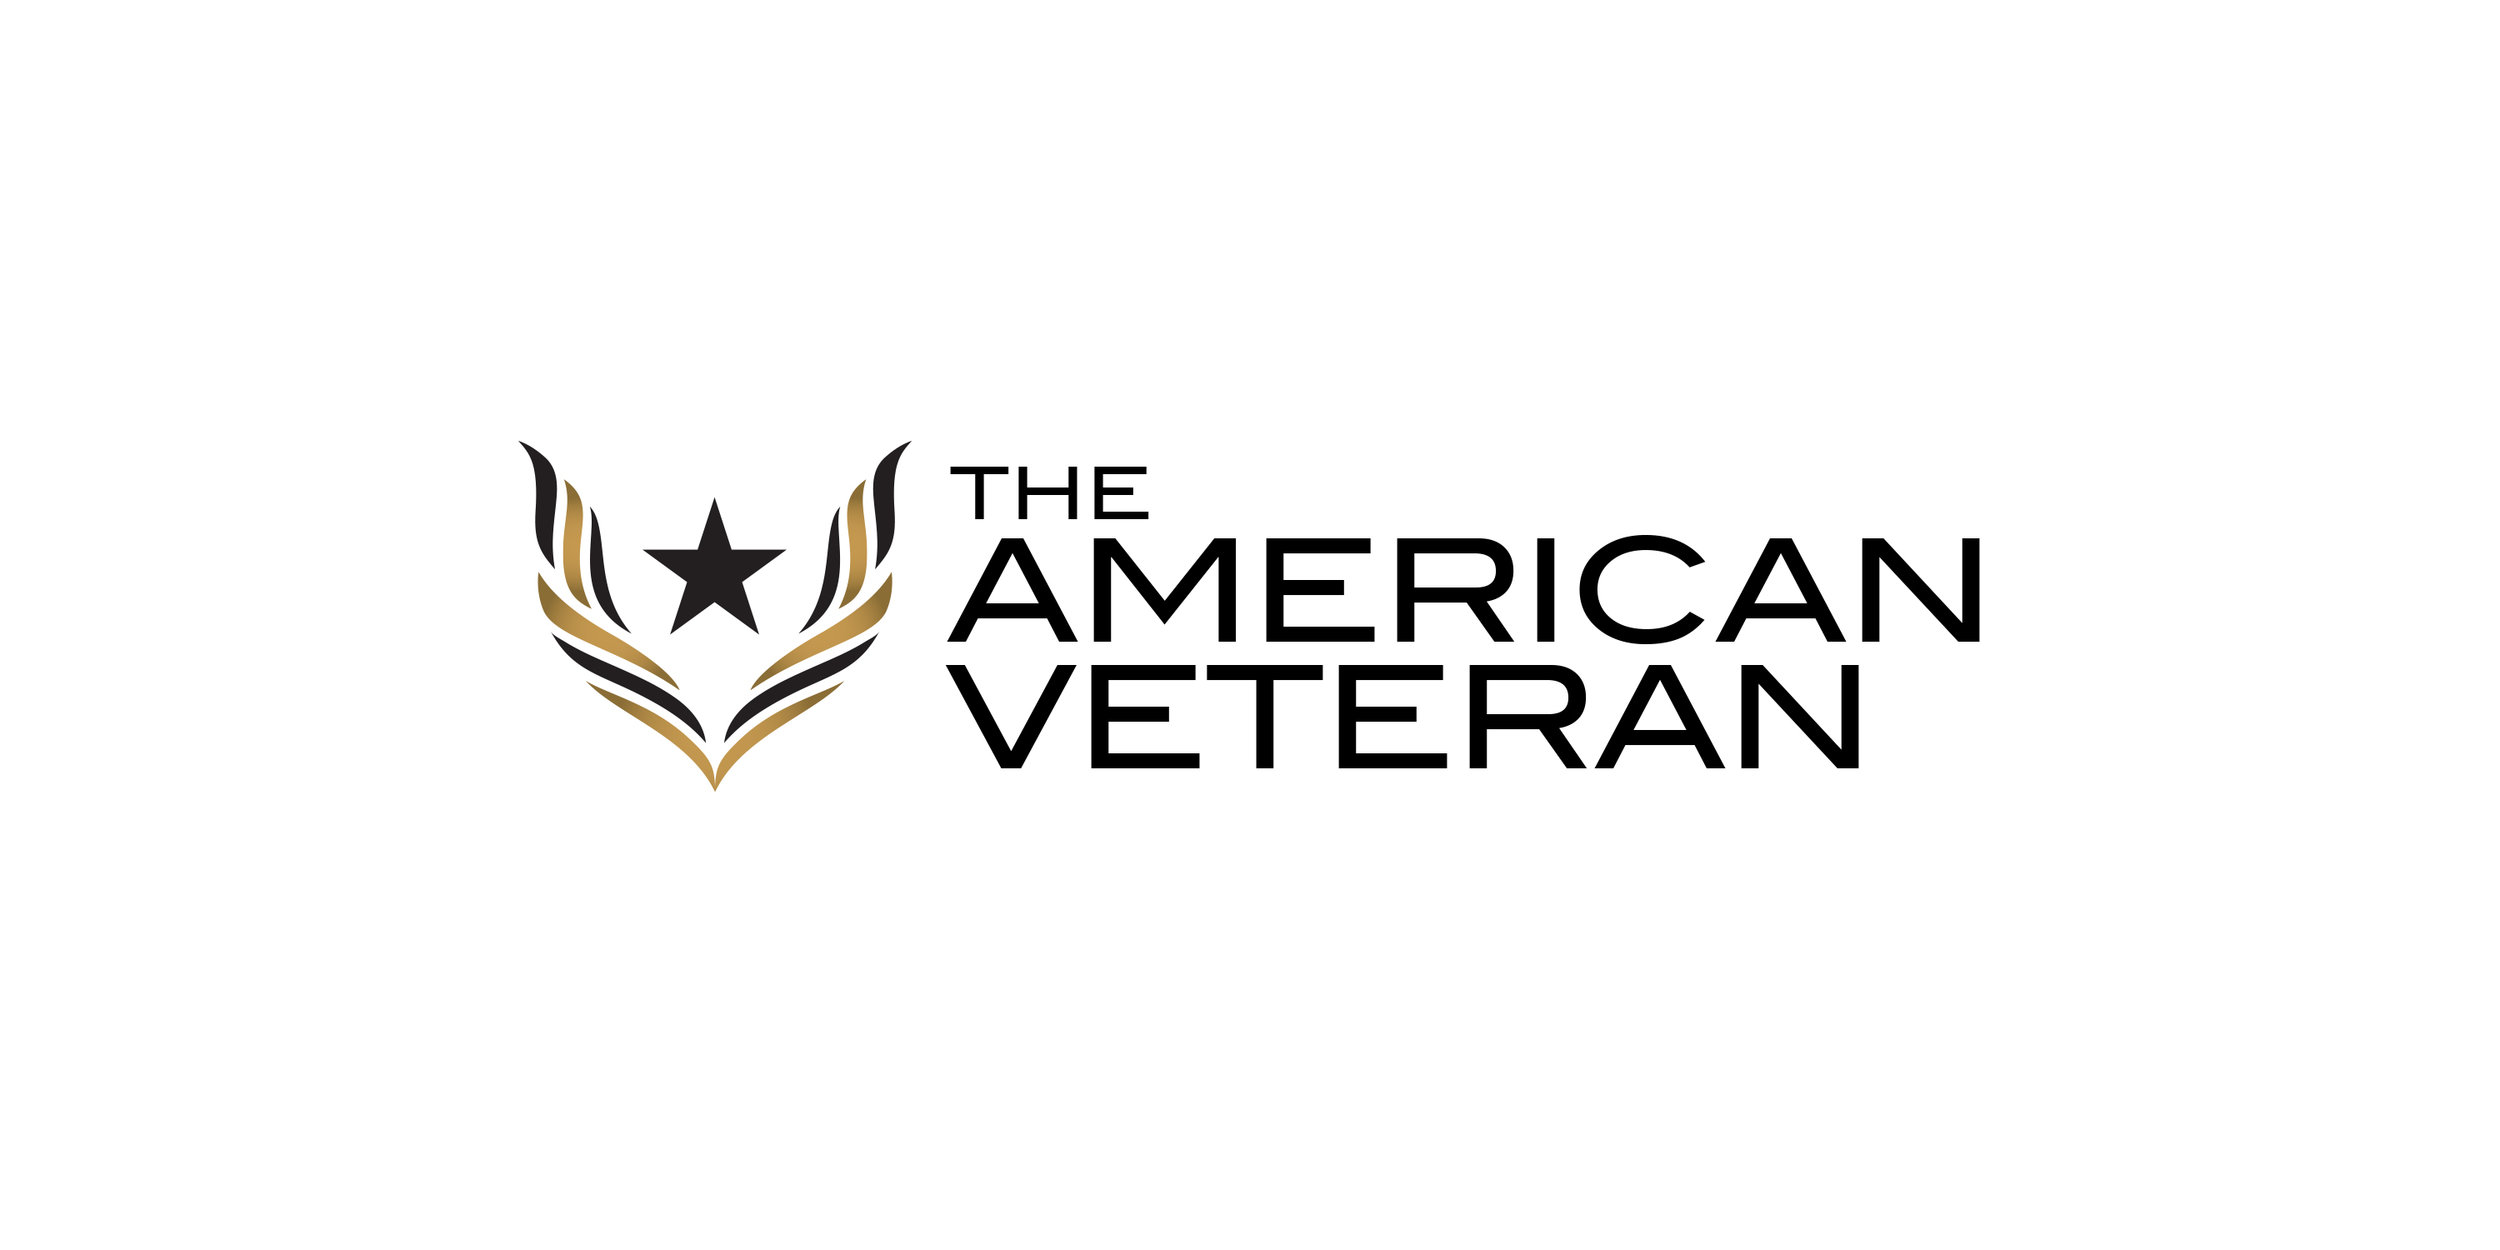 Web_Samples_AmericanVet_Logos_6.jpg